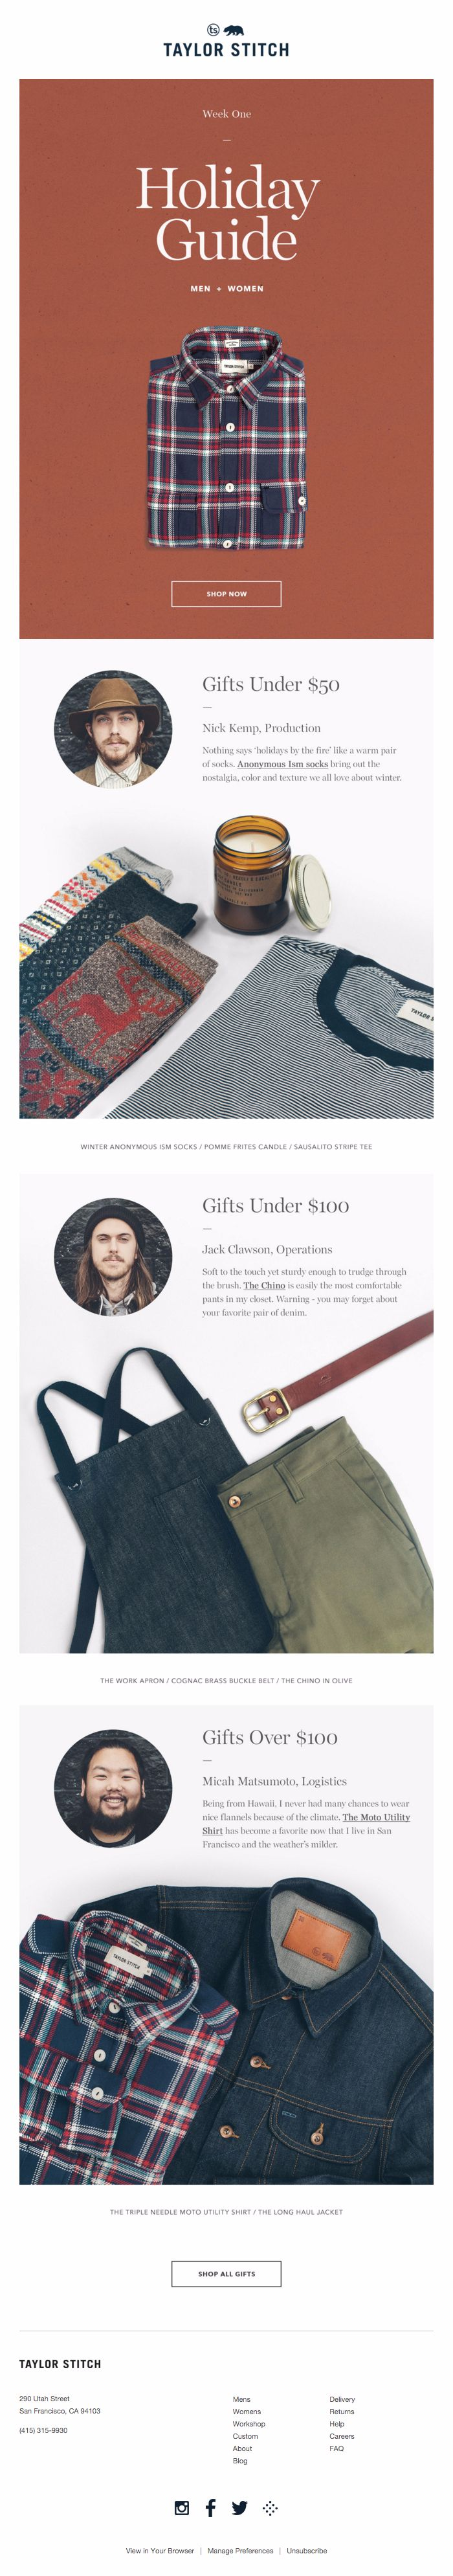 Taylor Stitch Holiday Guide                                                                                                                                                                                 More